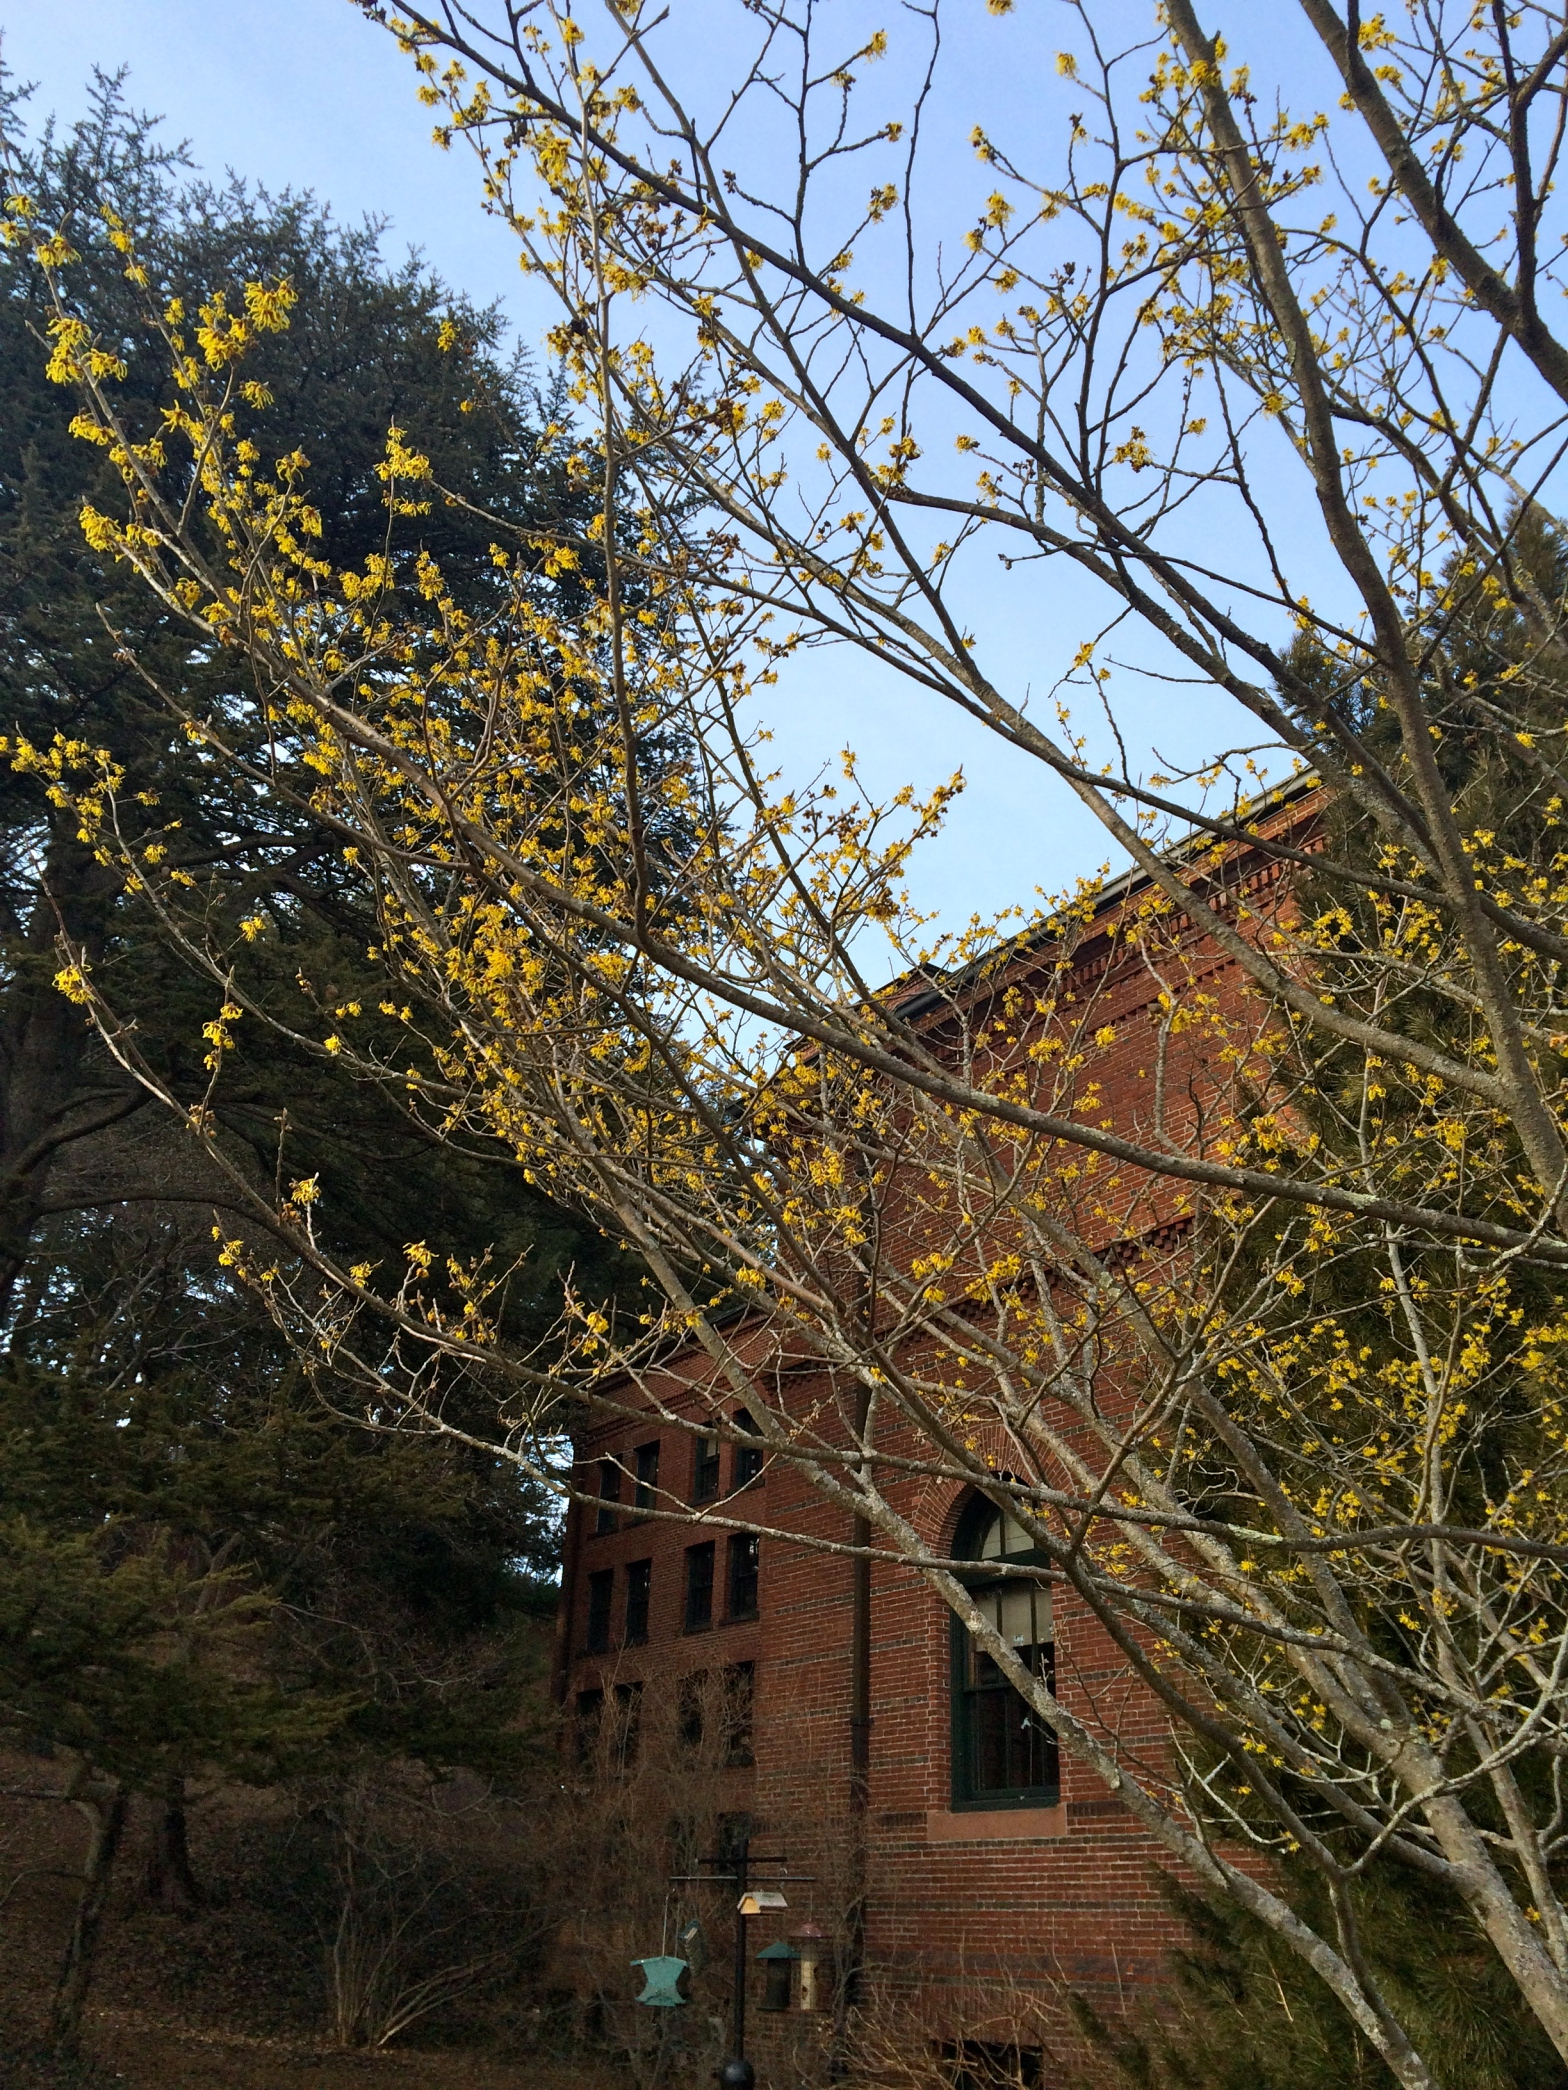 Yellow buds on a tree